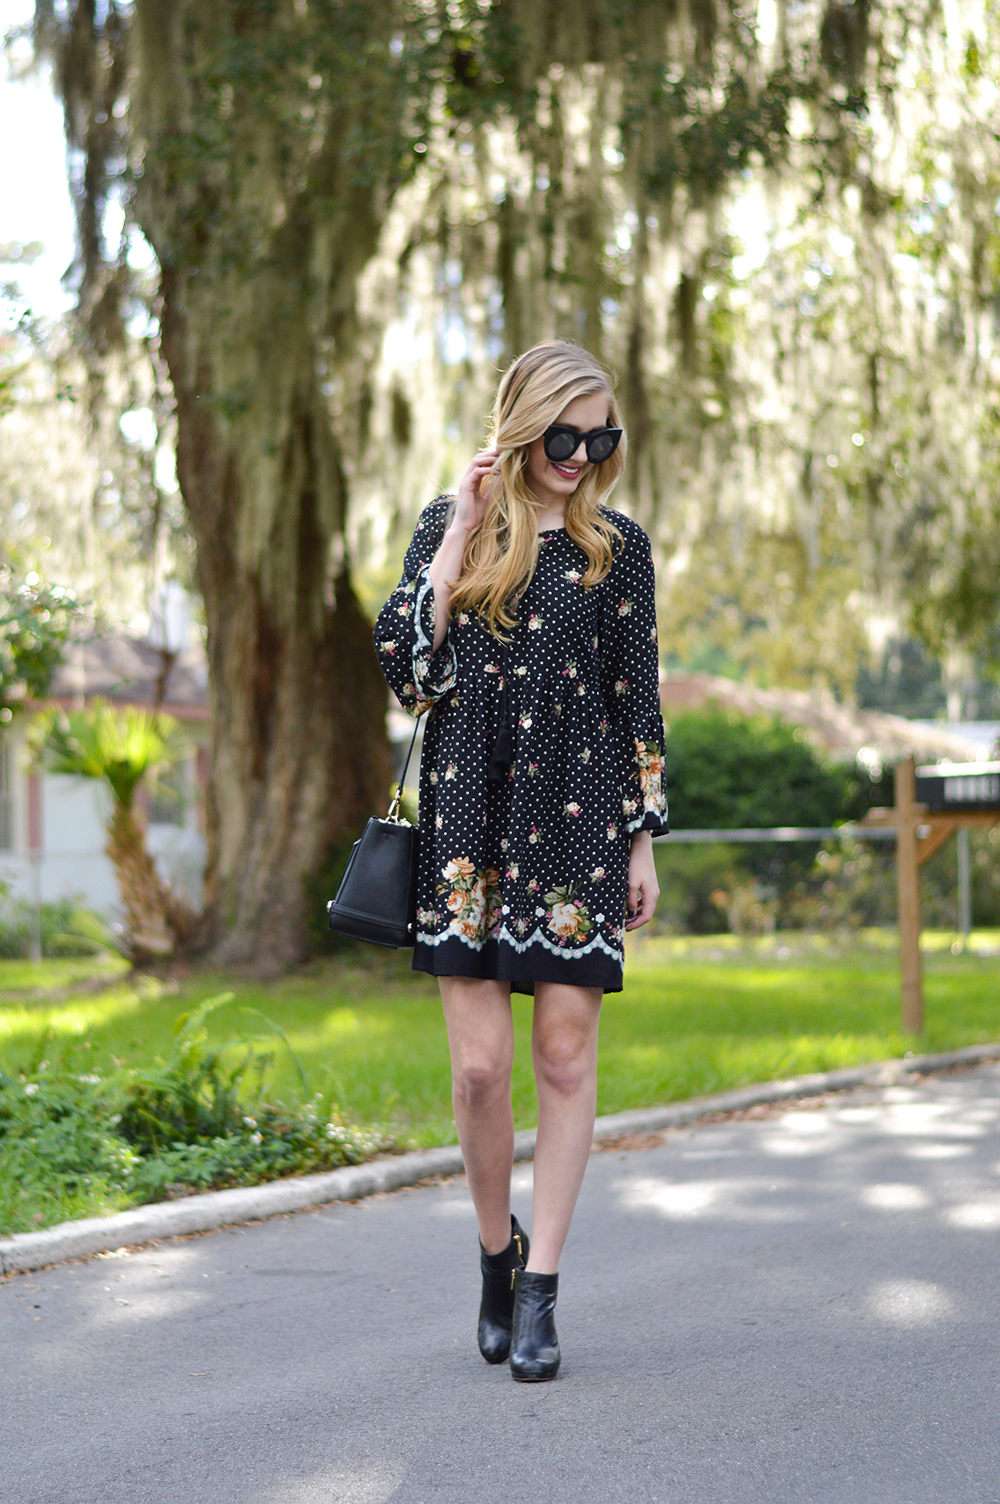 thistle-and-finn-styelled-fashion-blog-blogger-style-fblogger-fall-trends-booties-sweater-weather-tory-burch-michael-kors-shop-ditto-endless-eyewear-kylie-cosmetics-dresses-october-04